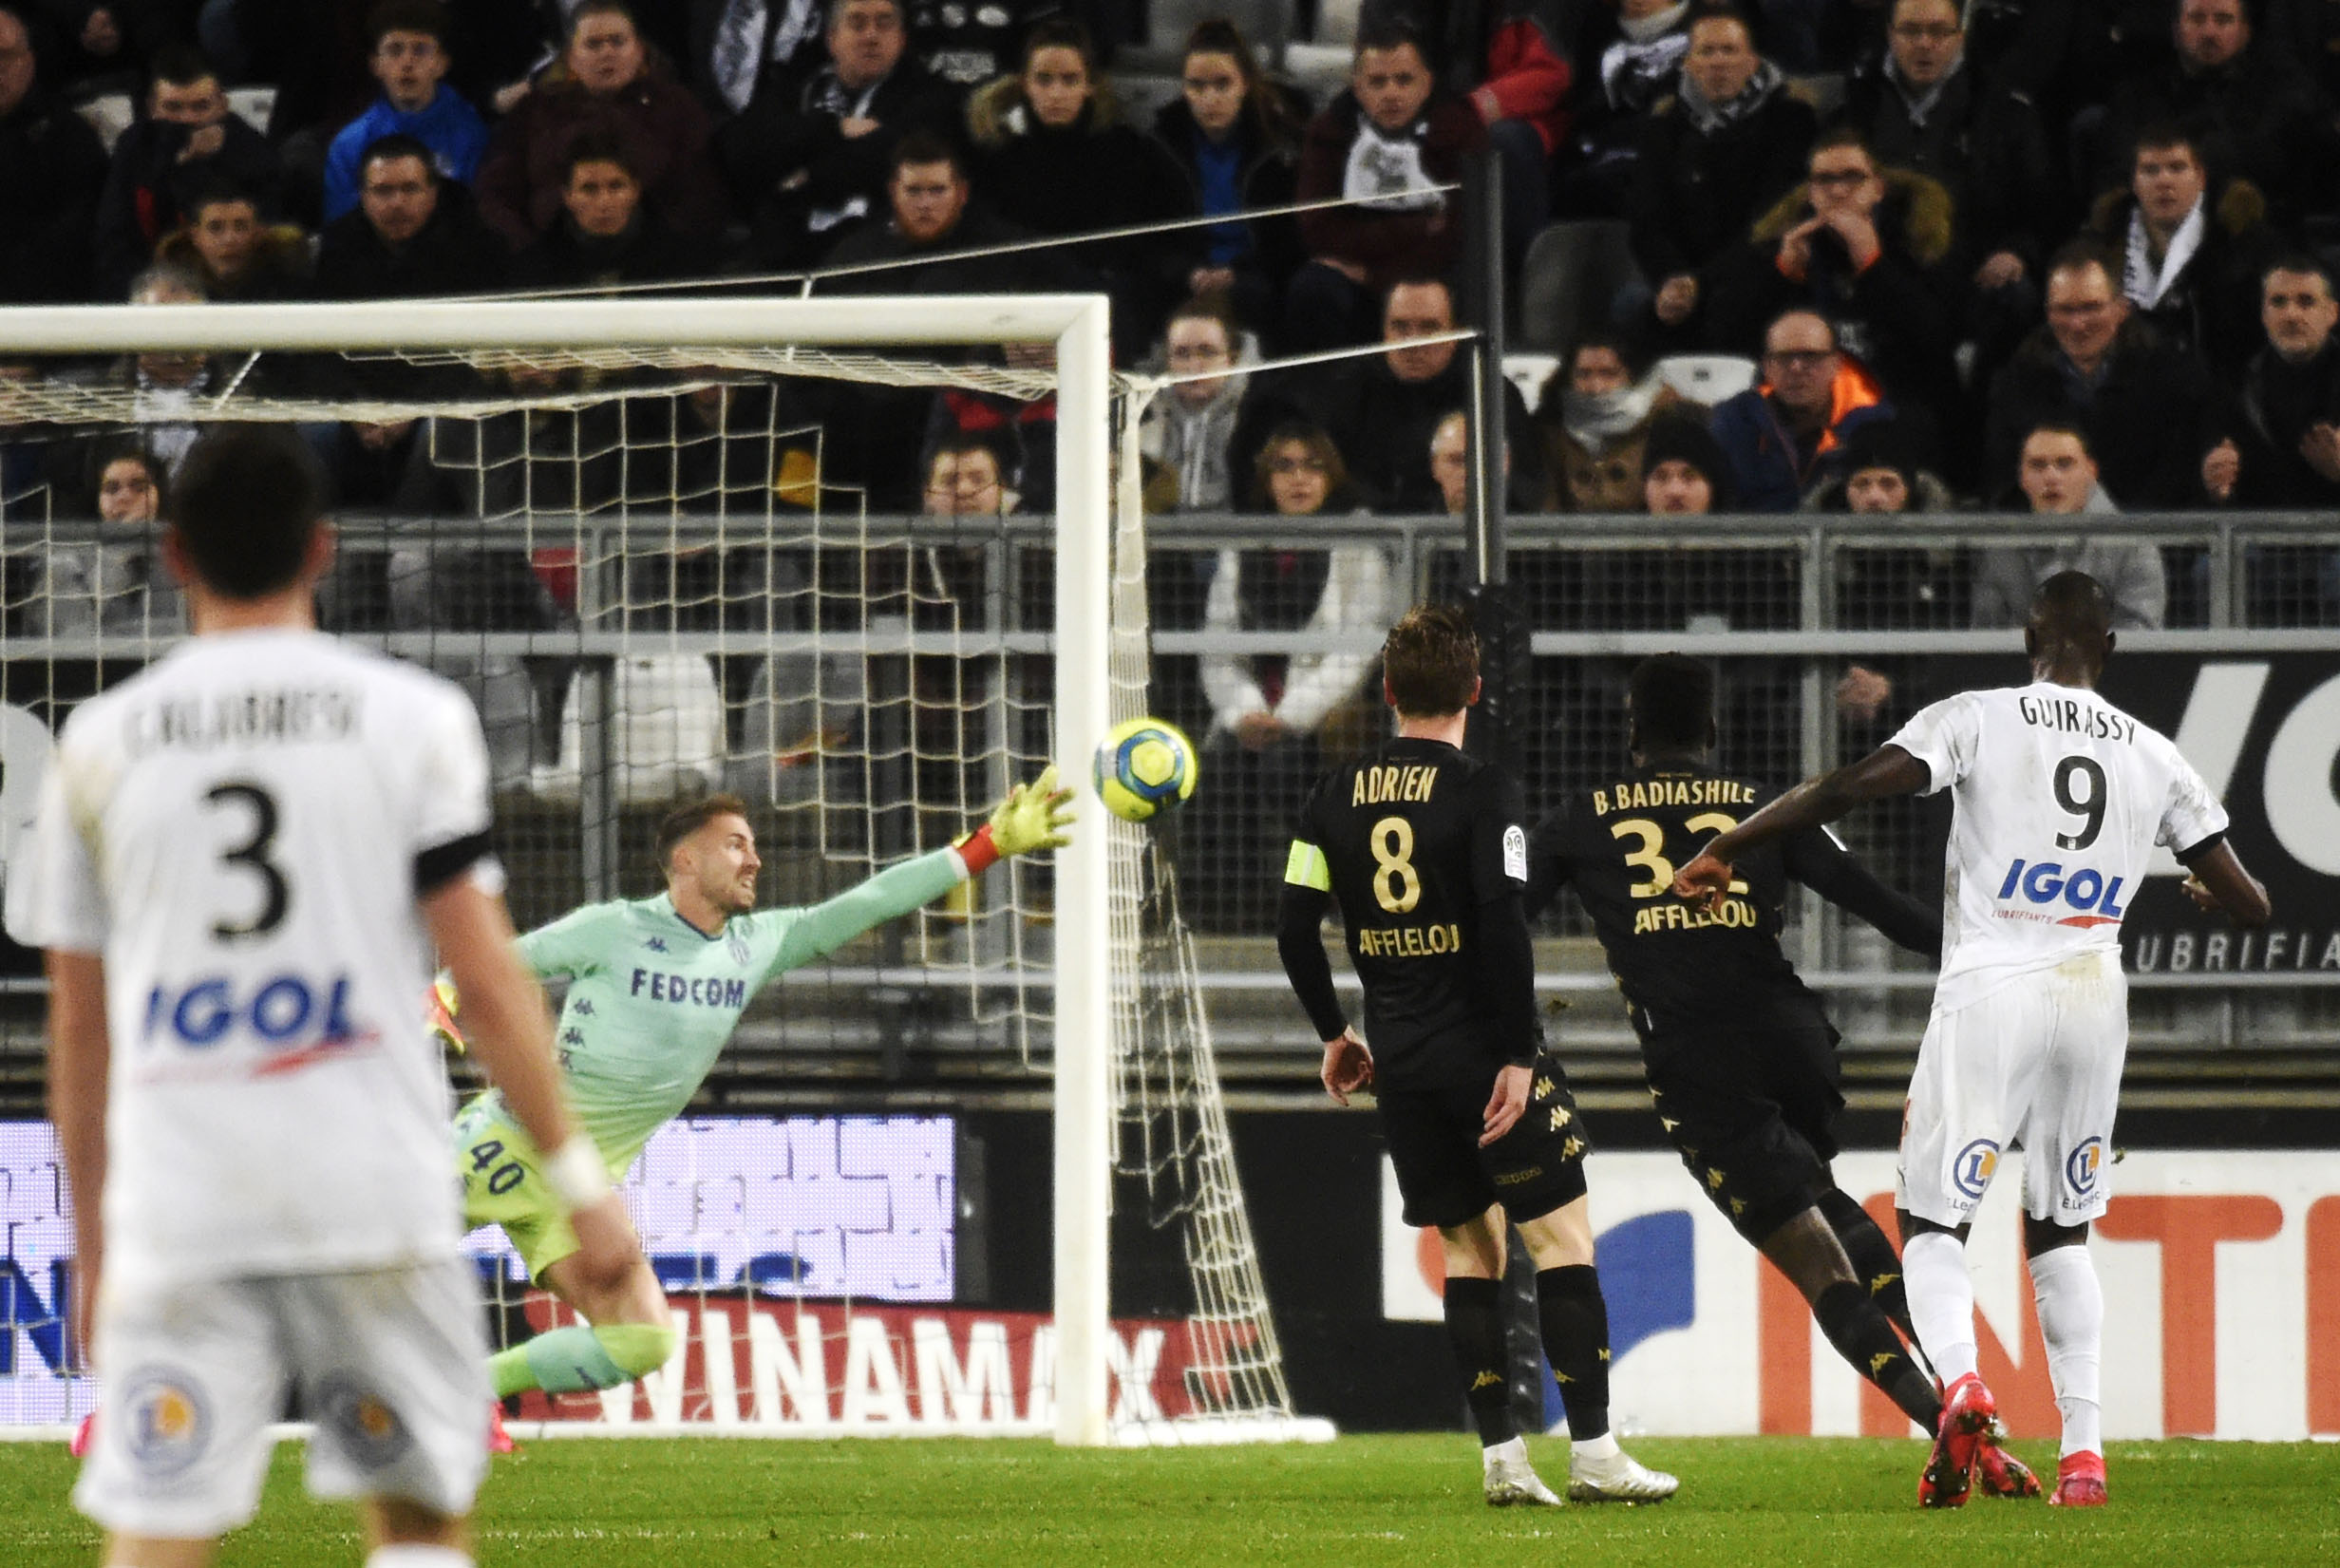 Amiens vs AS Monaco highlights & video full match